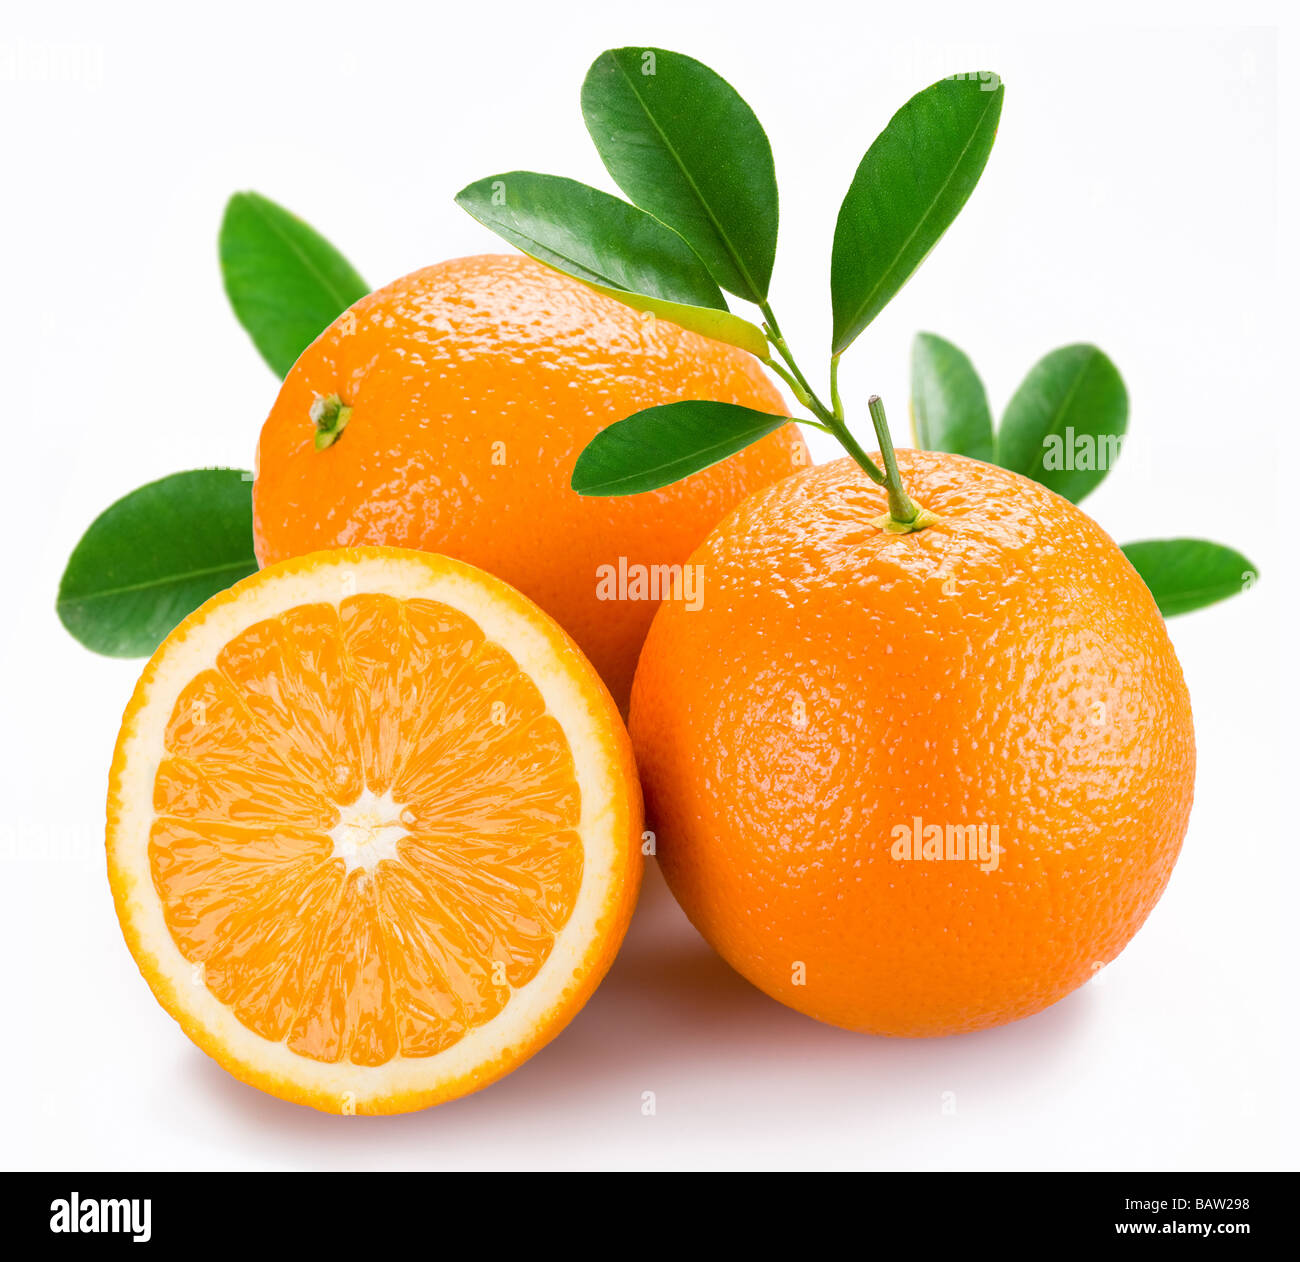 Oranges with leaves on a white background - Stock Image